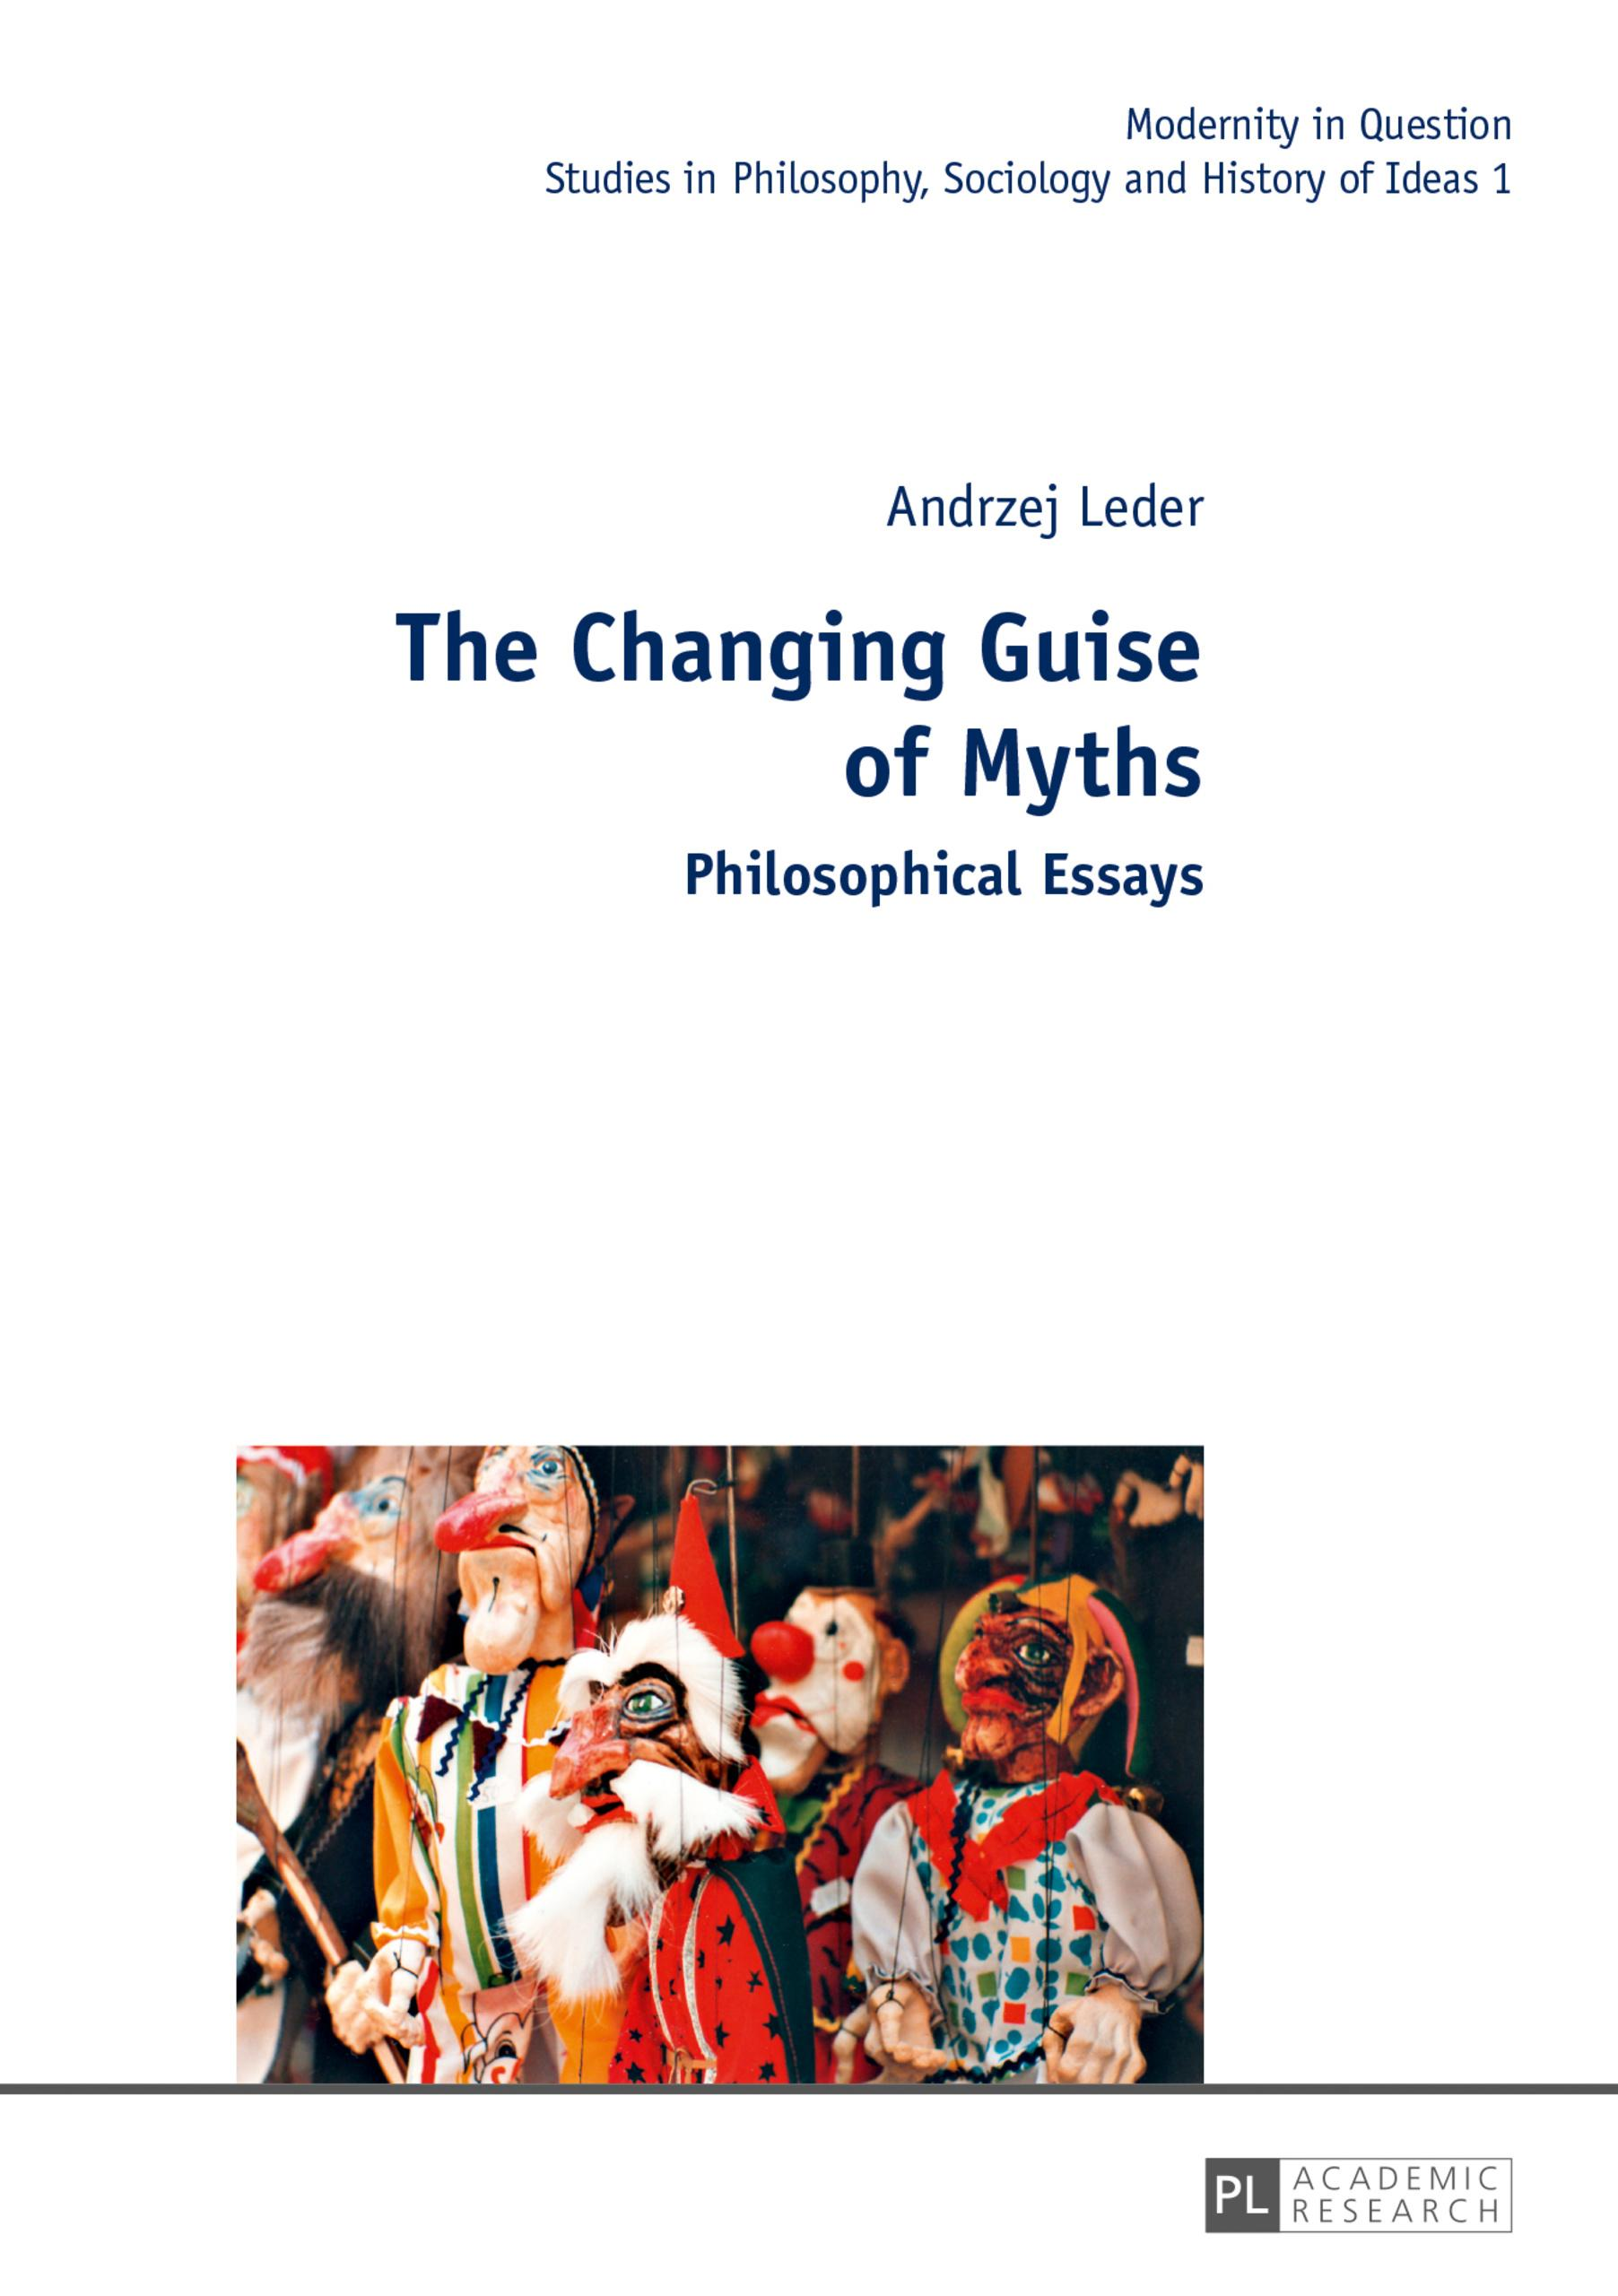 The Changing Guise of Myths, Andrzej Leder